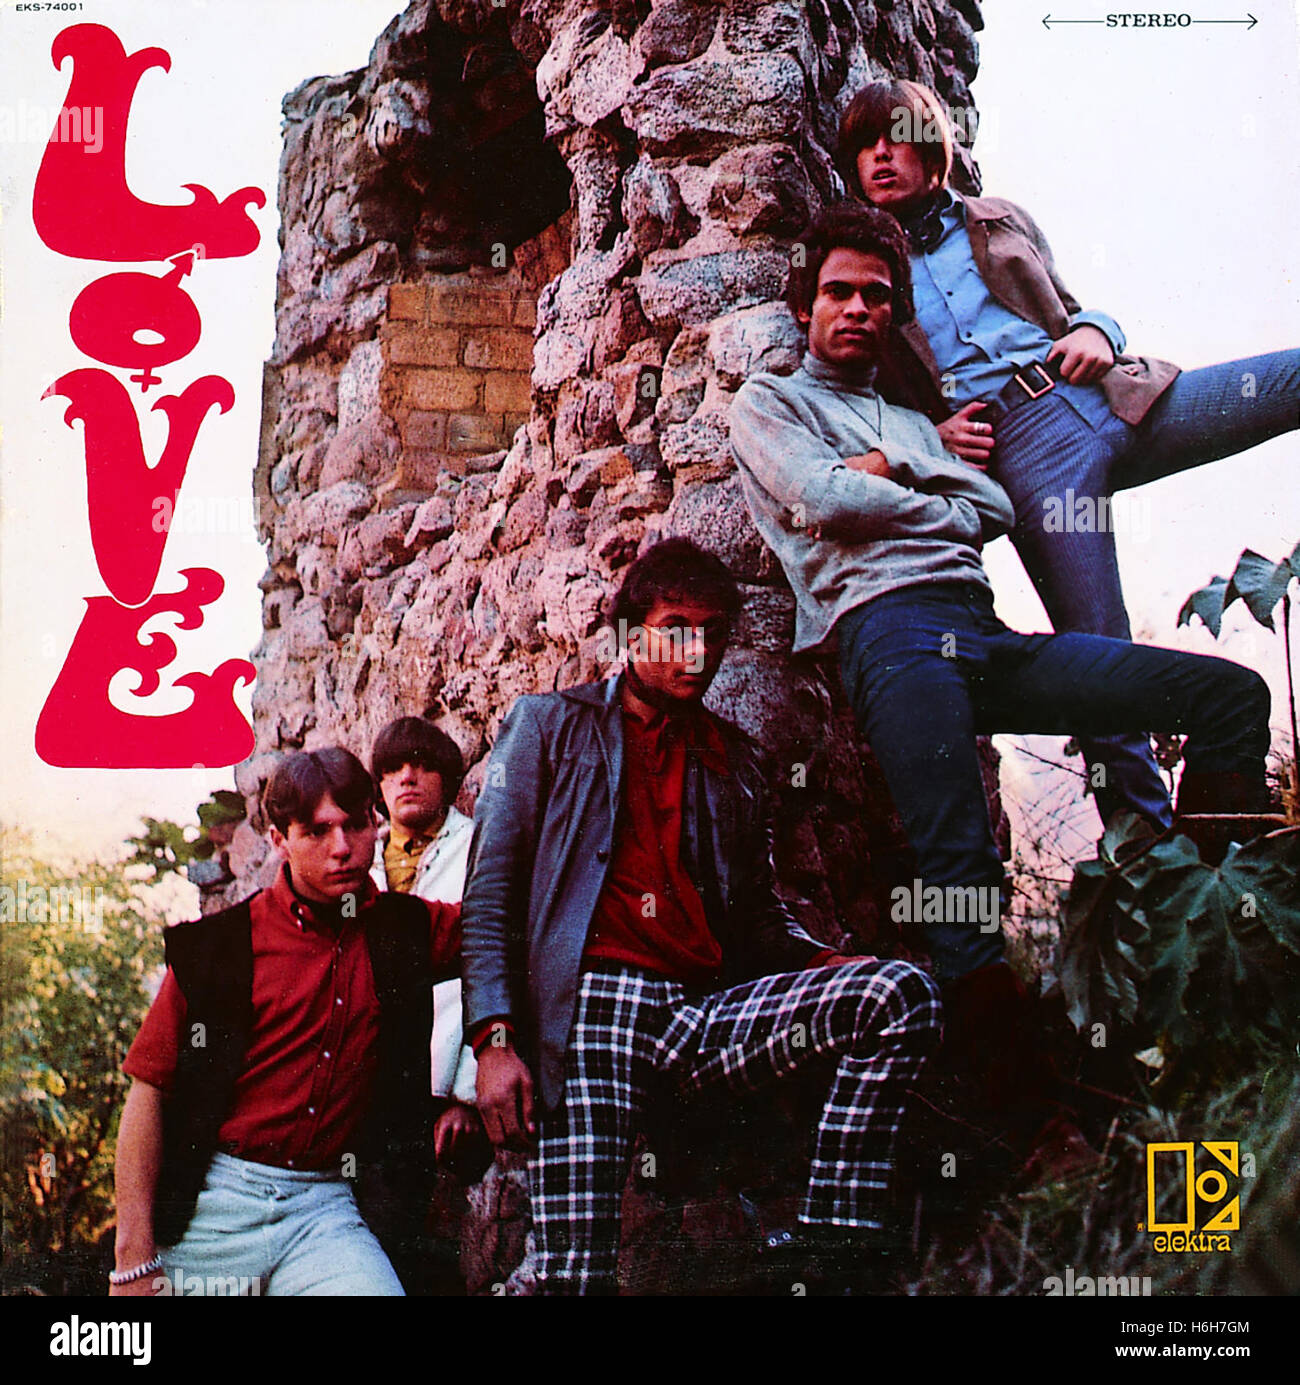 LOVE, the band circa 1960s featuring Arthur Lee. - Stock Image